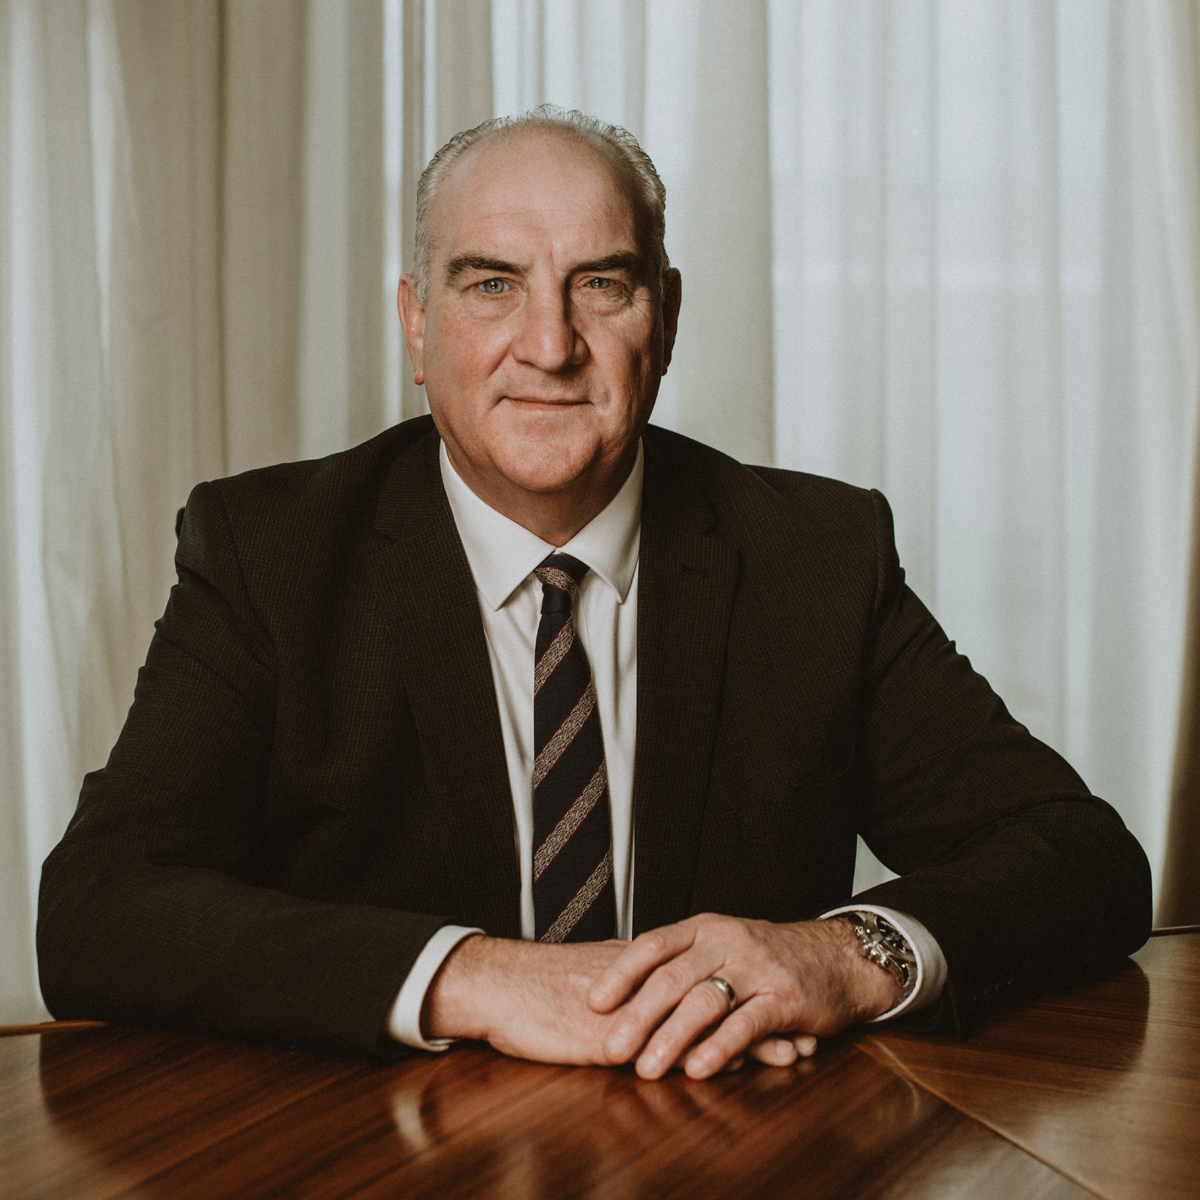 BOV Chief Executive Officer Rick Hunkin re-elected Chairman of the MBA